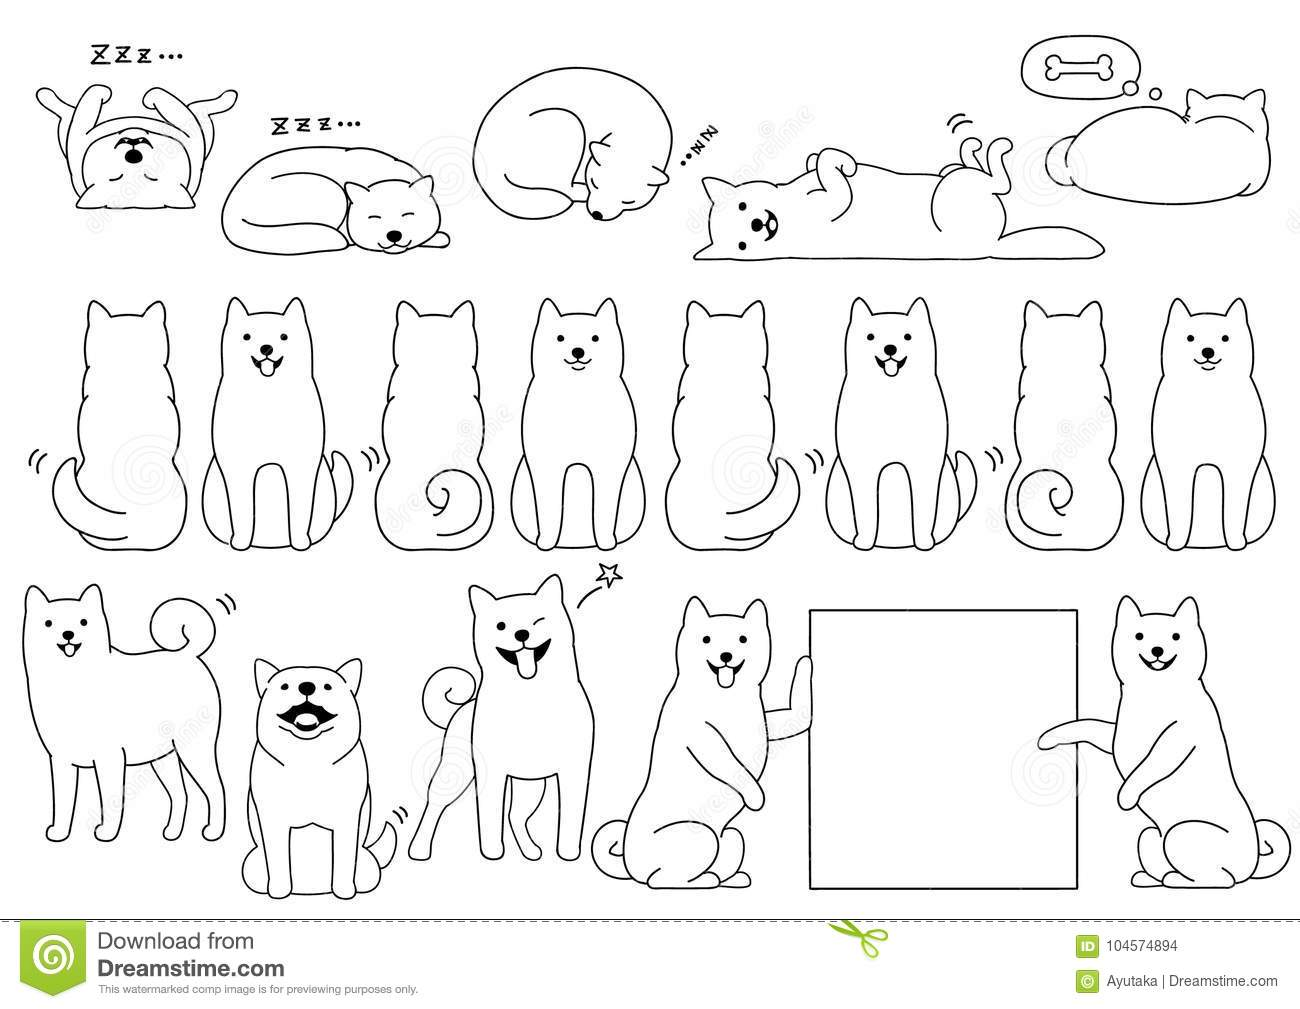 Drawing Lines Between Html Elements : Shiba cartoons illustrations vector stock images